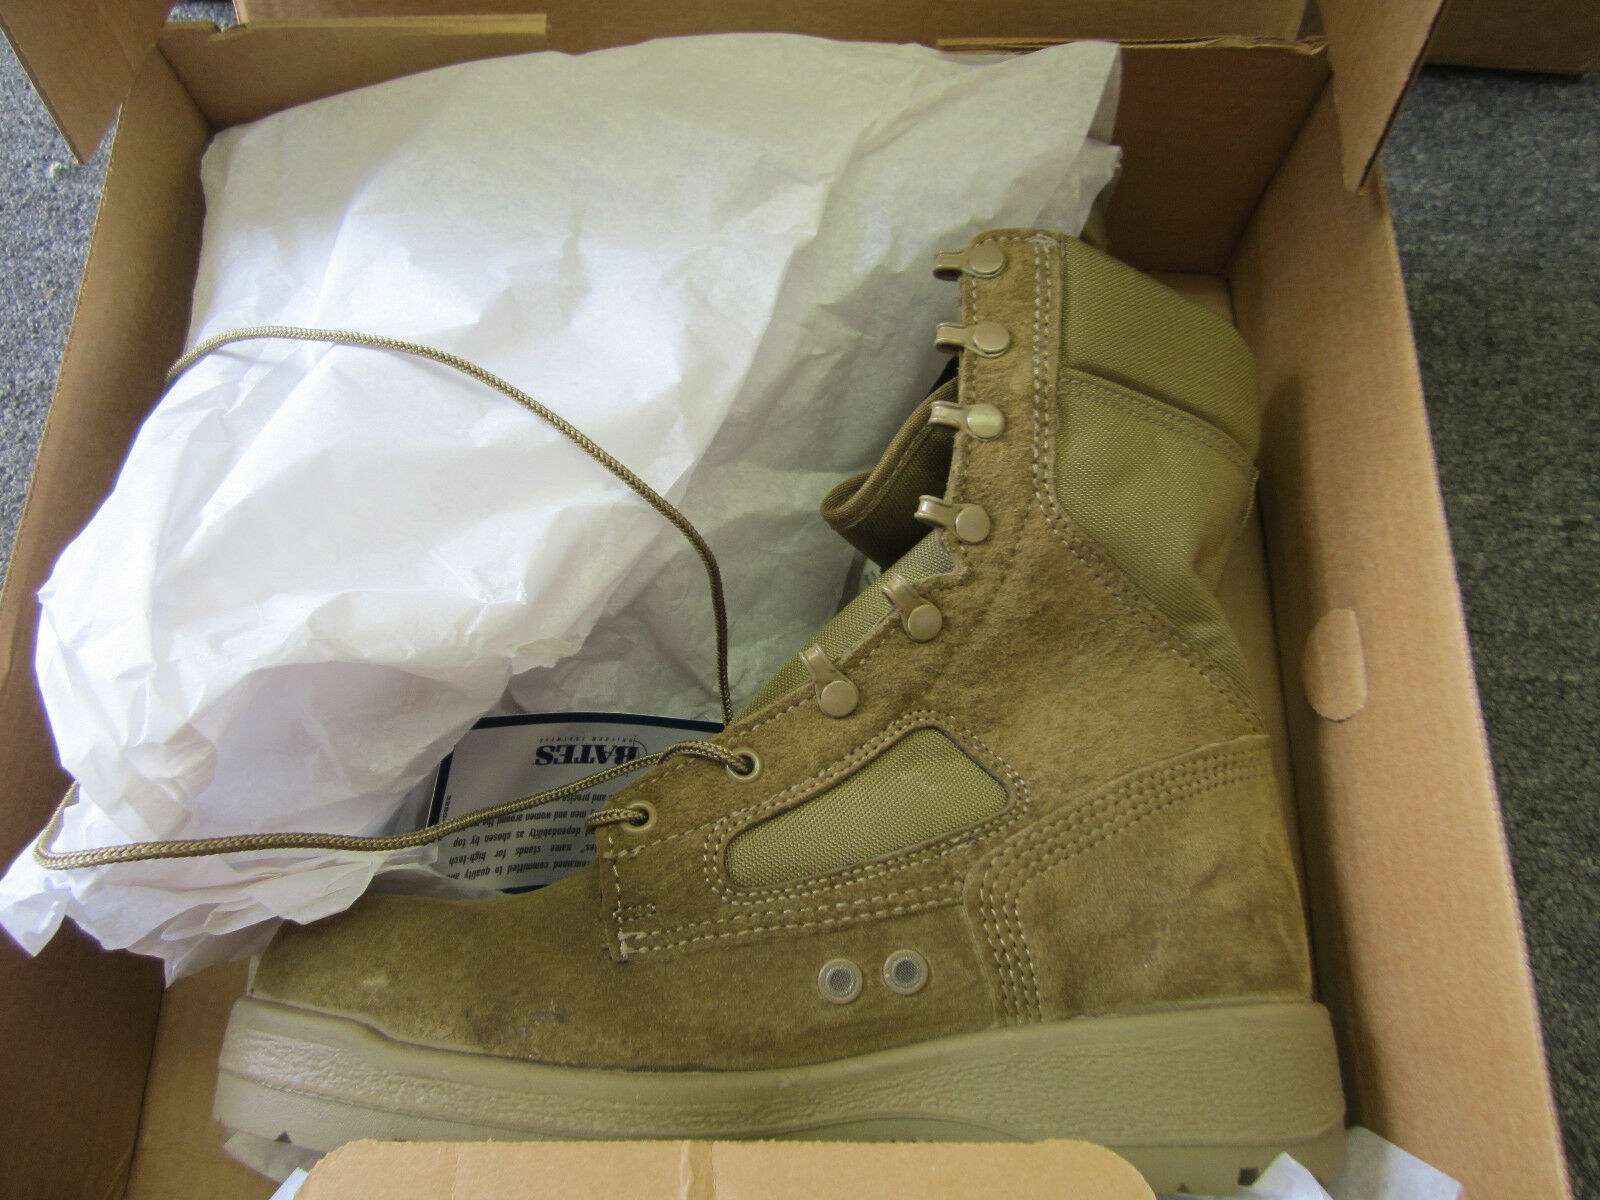 New BATES USMC Hot Weather Military Desert Combat Boots Size 8XW